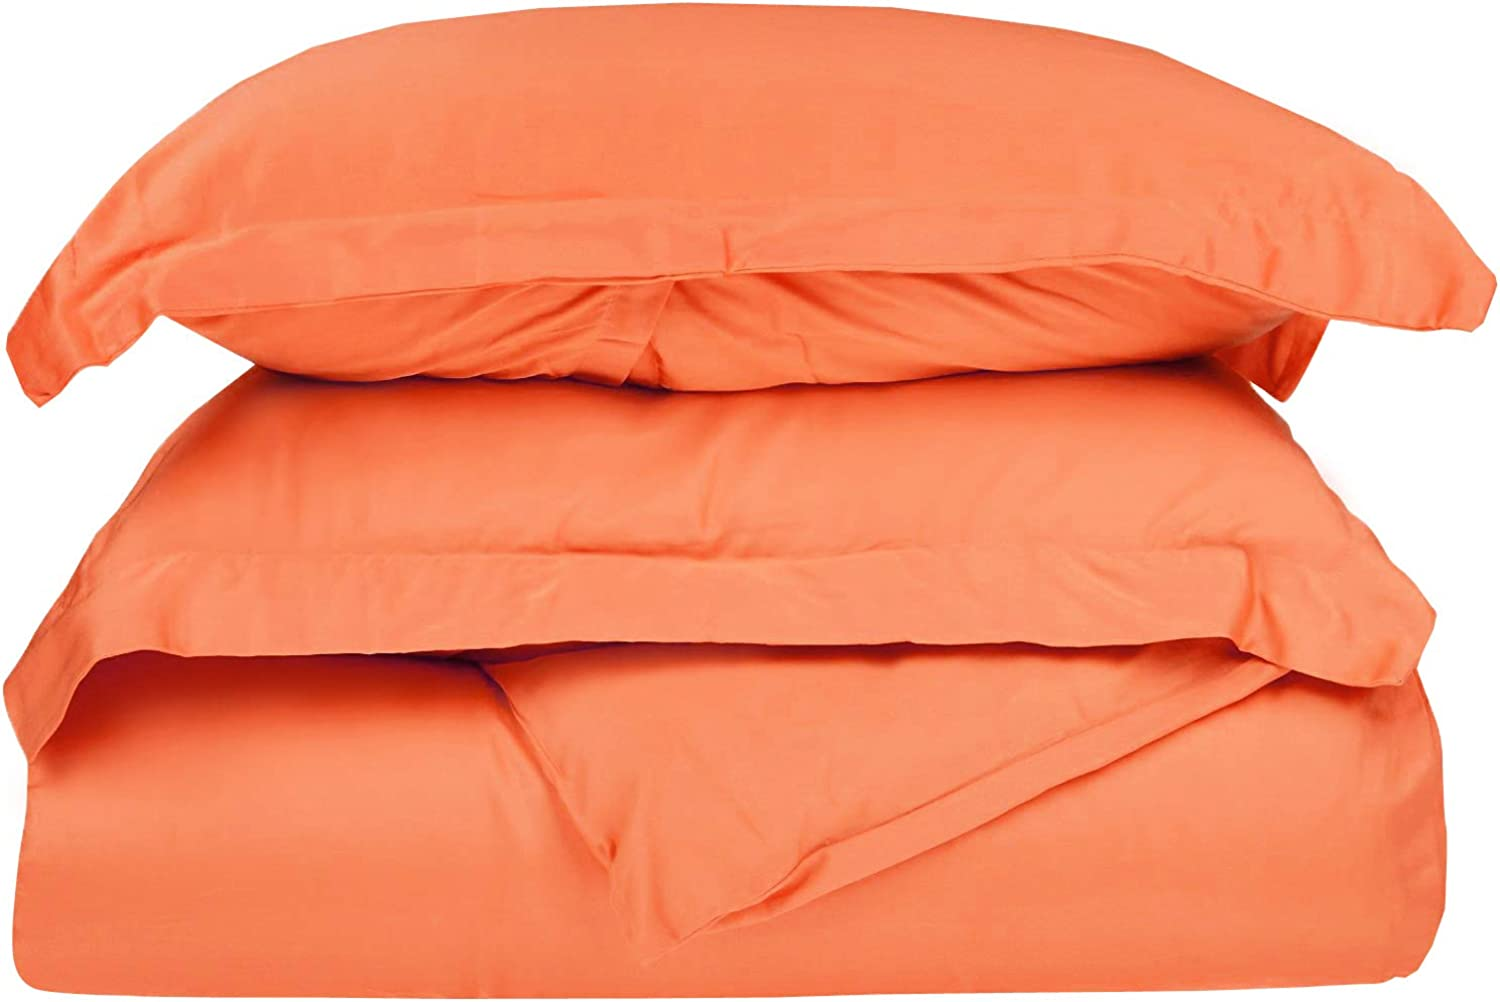 Superior 100% Premium Combed Cotton, 300 Thread Count 3 Piece Duvet Cover Set with 2 Pillow Shams, Single Ply Cotton, Soft and Luxurious Bedding Sets - Full Queen Duvet Cover, Coral